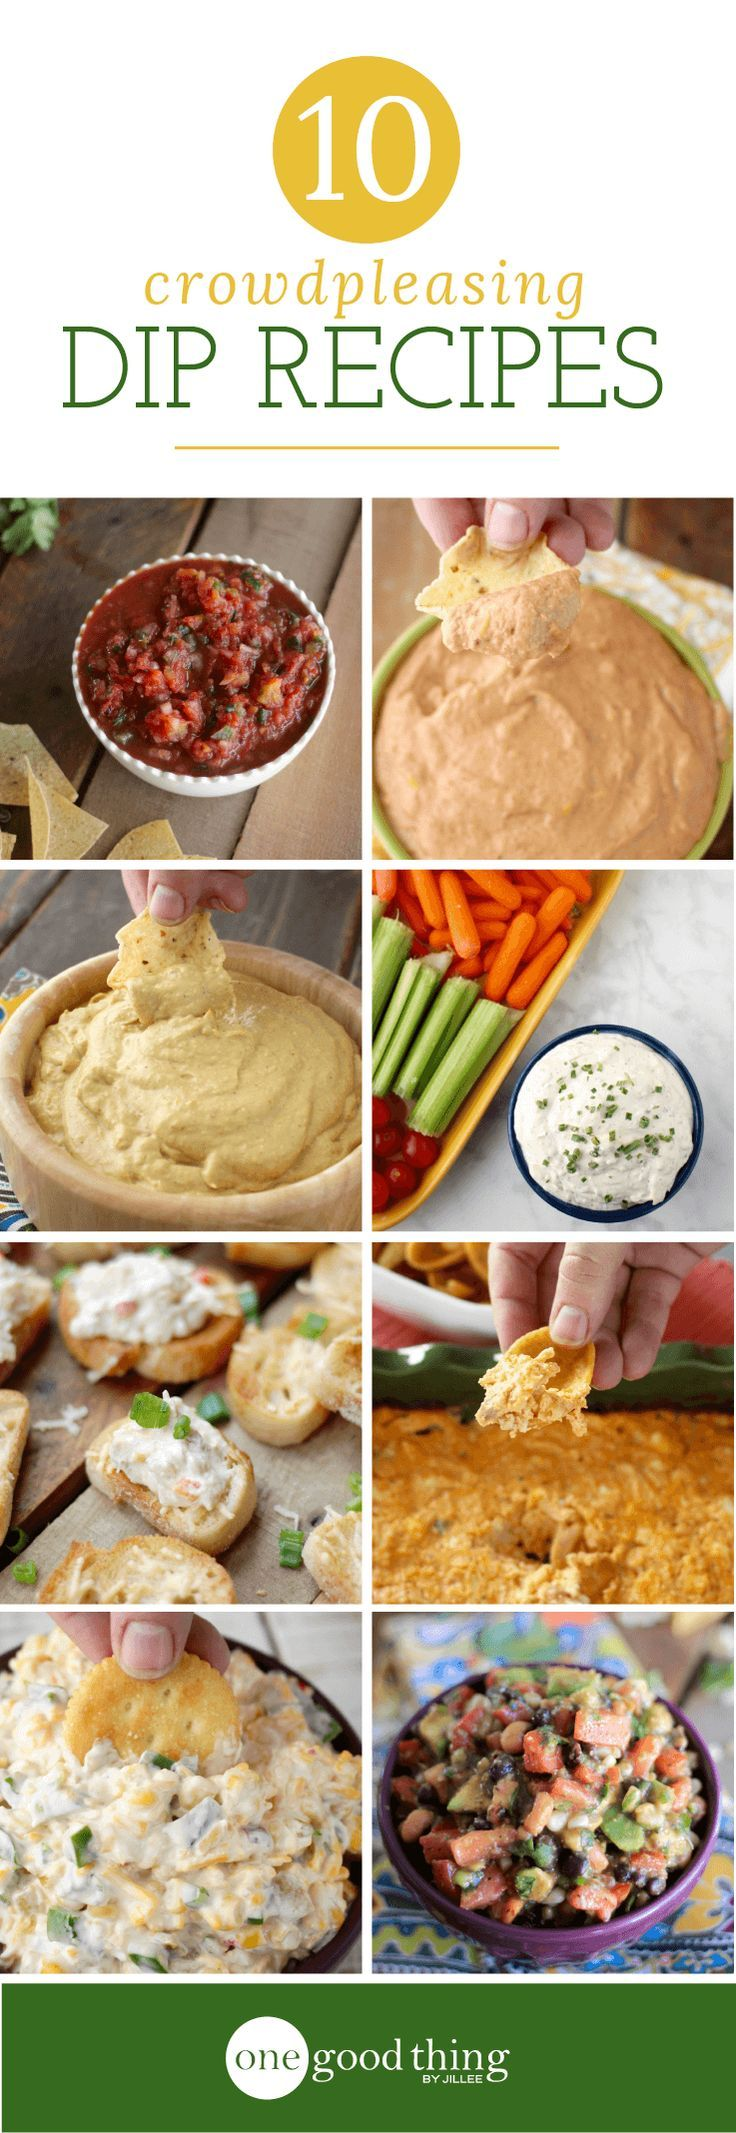 You can never have too many good dip recipes on hand. Any one of these dips is sure to be a hit with your holiday guests!